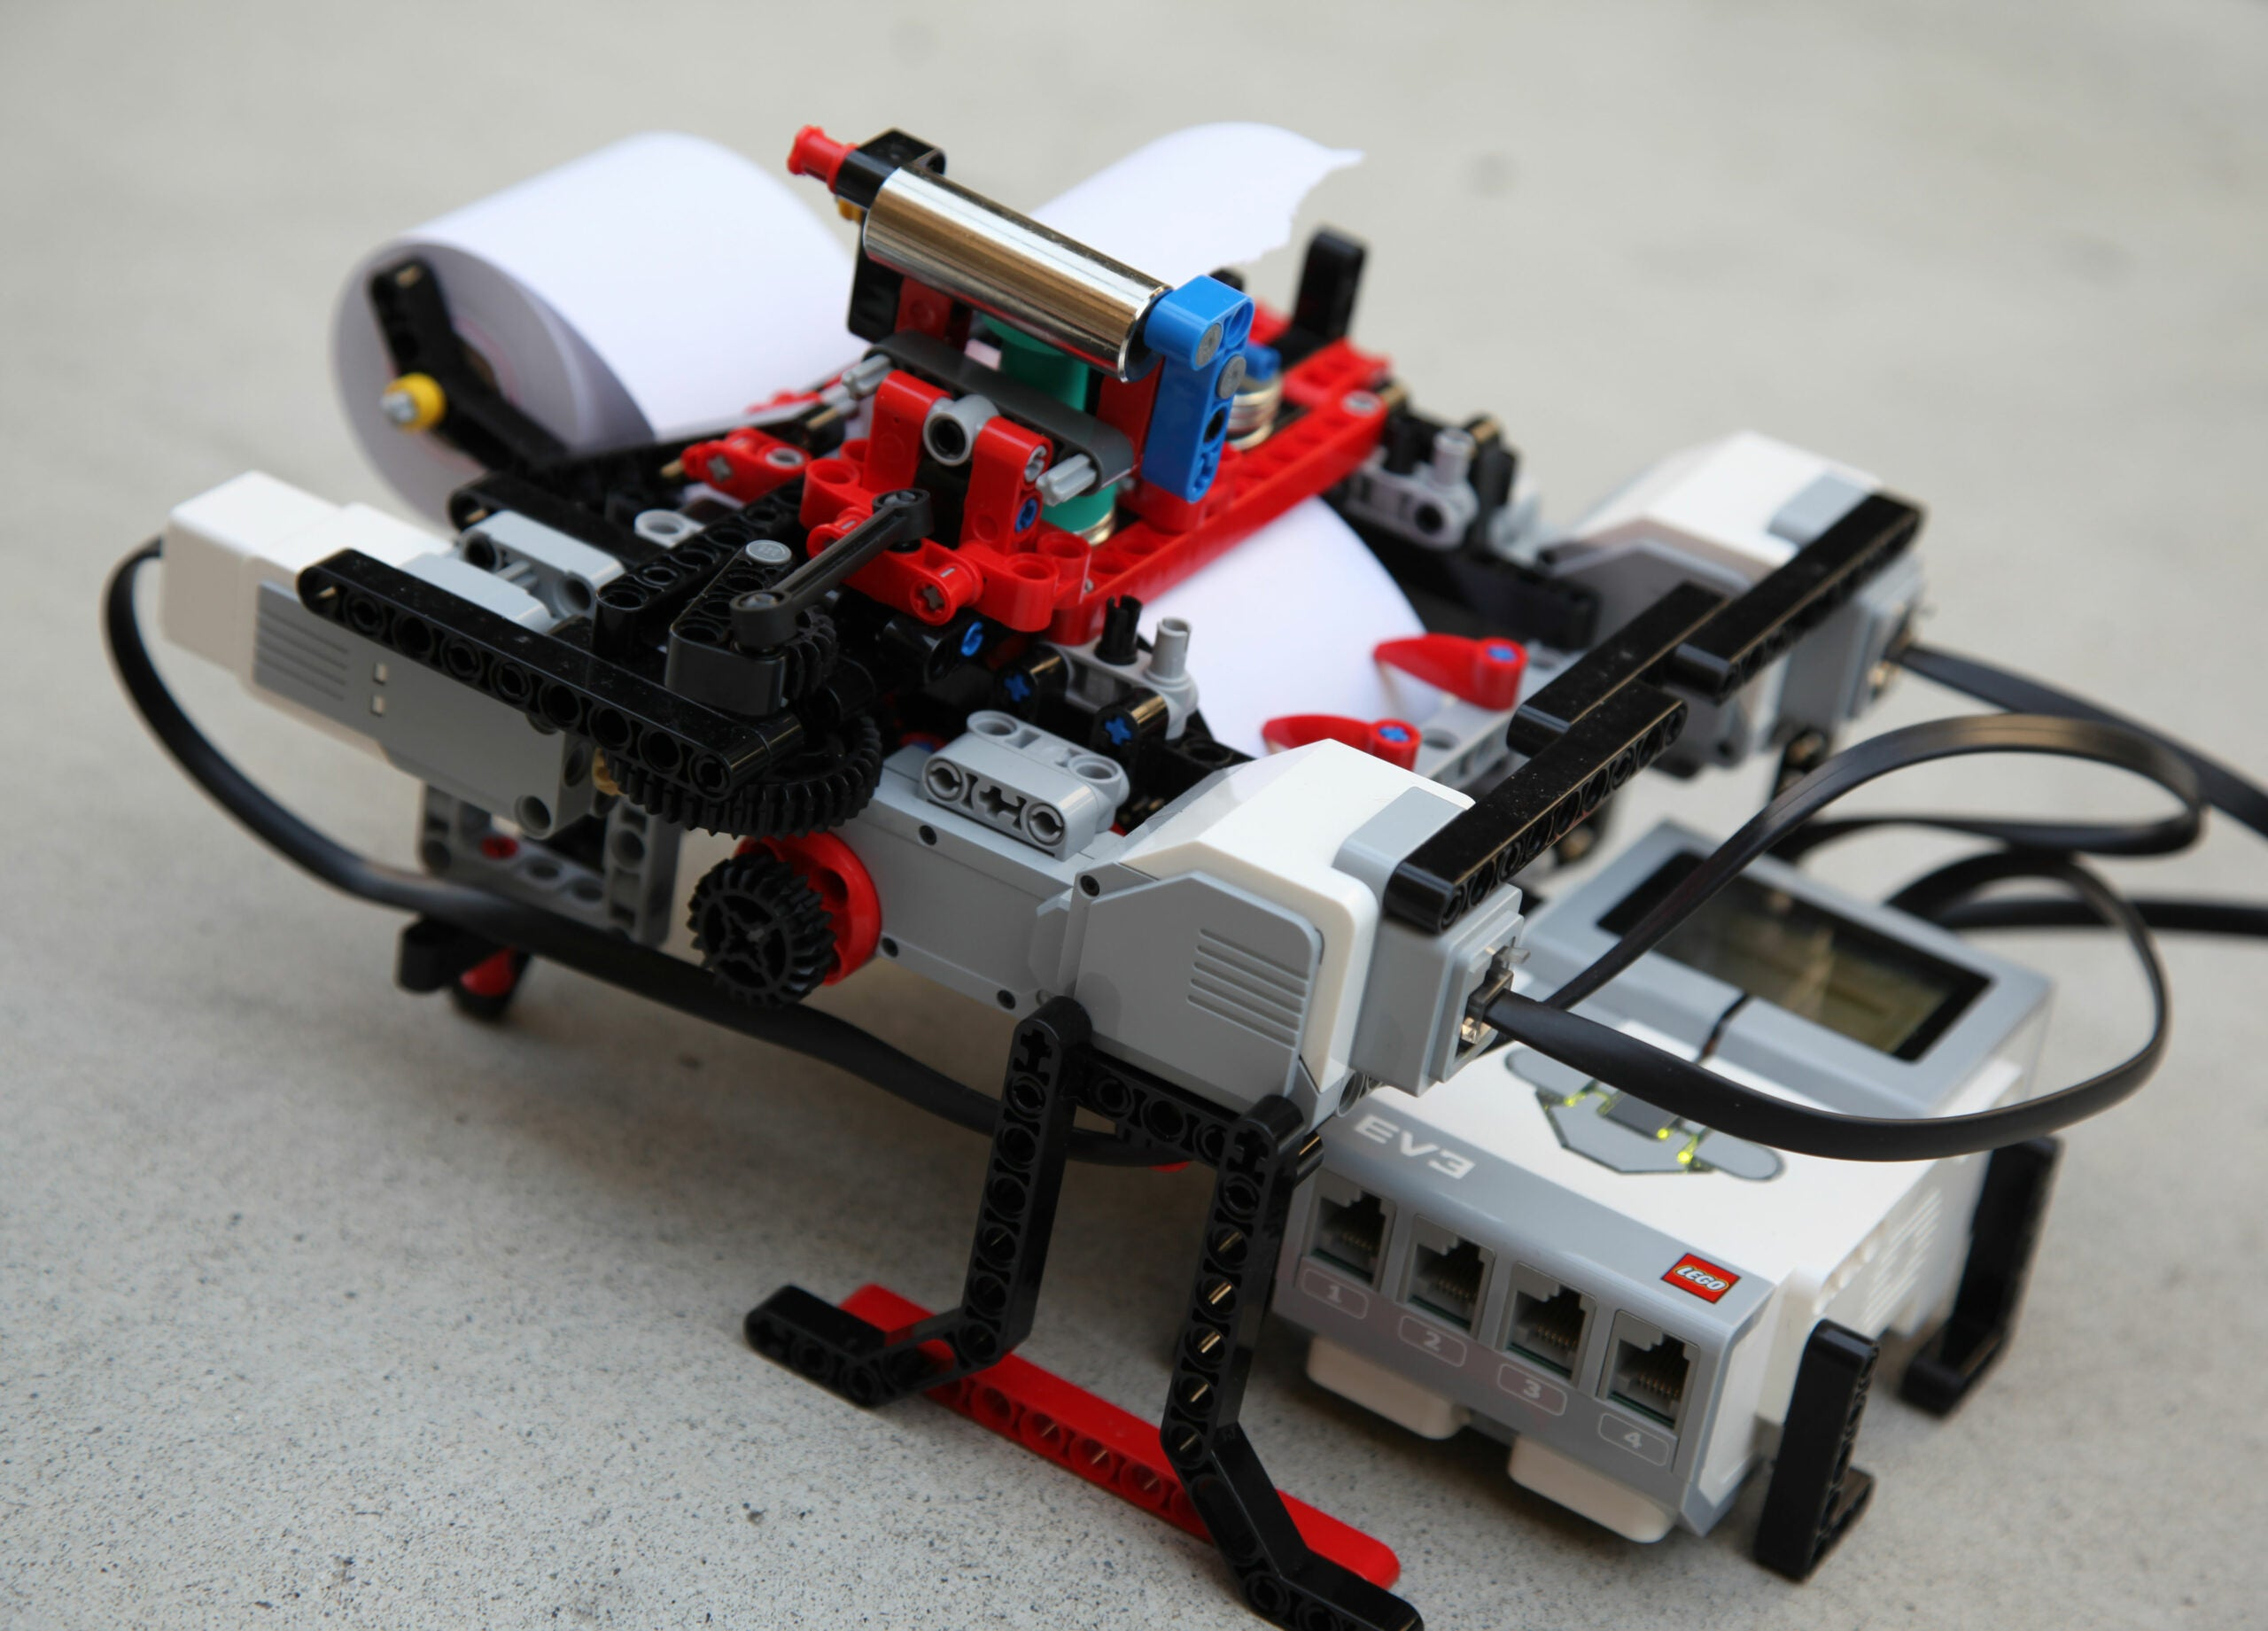 Three Projects That Make LEGO Toys Into High-Tech Tools